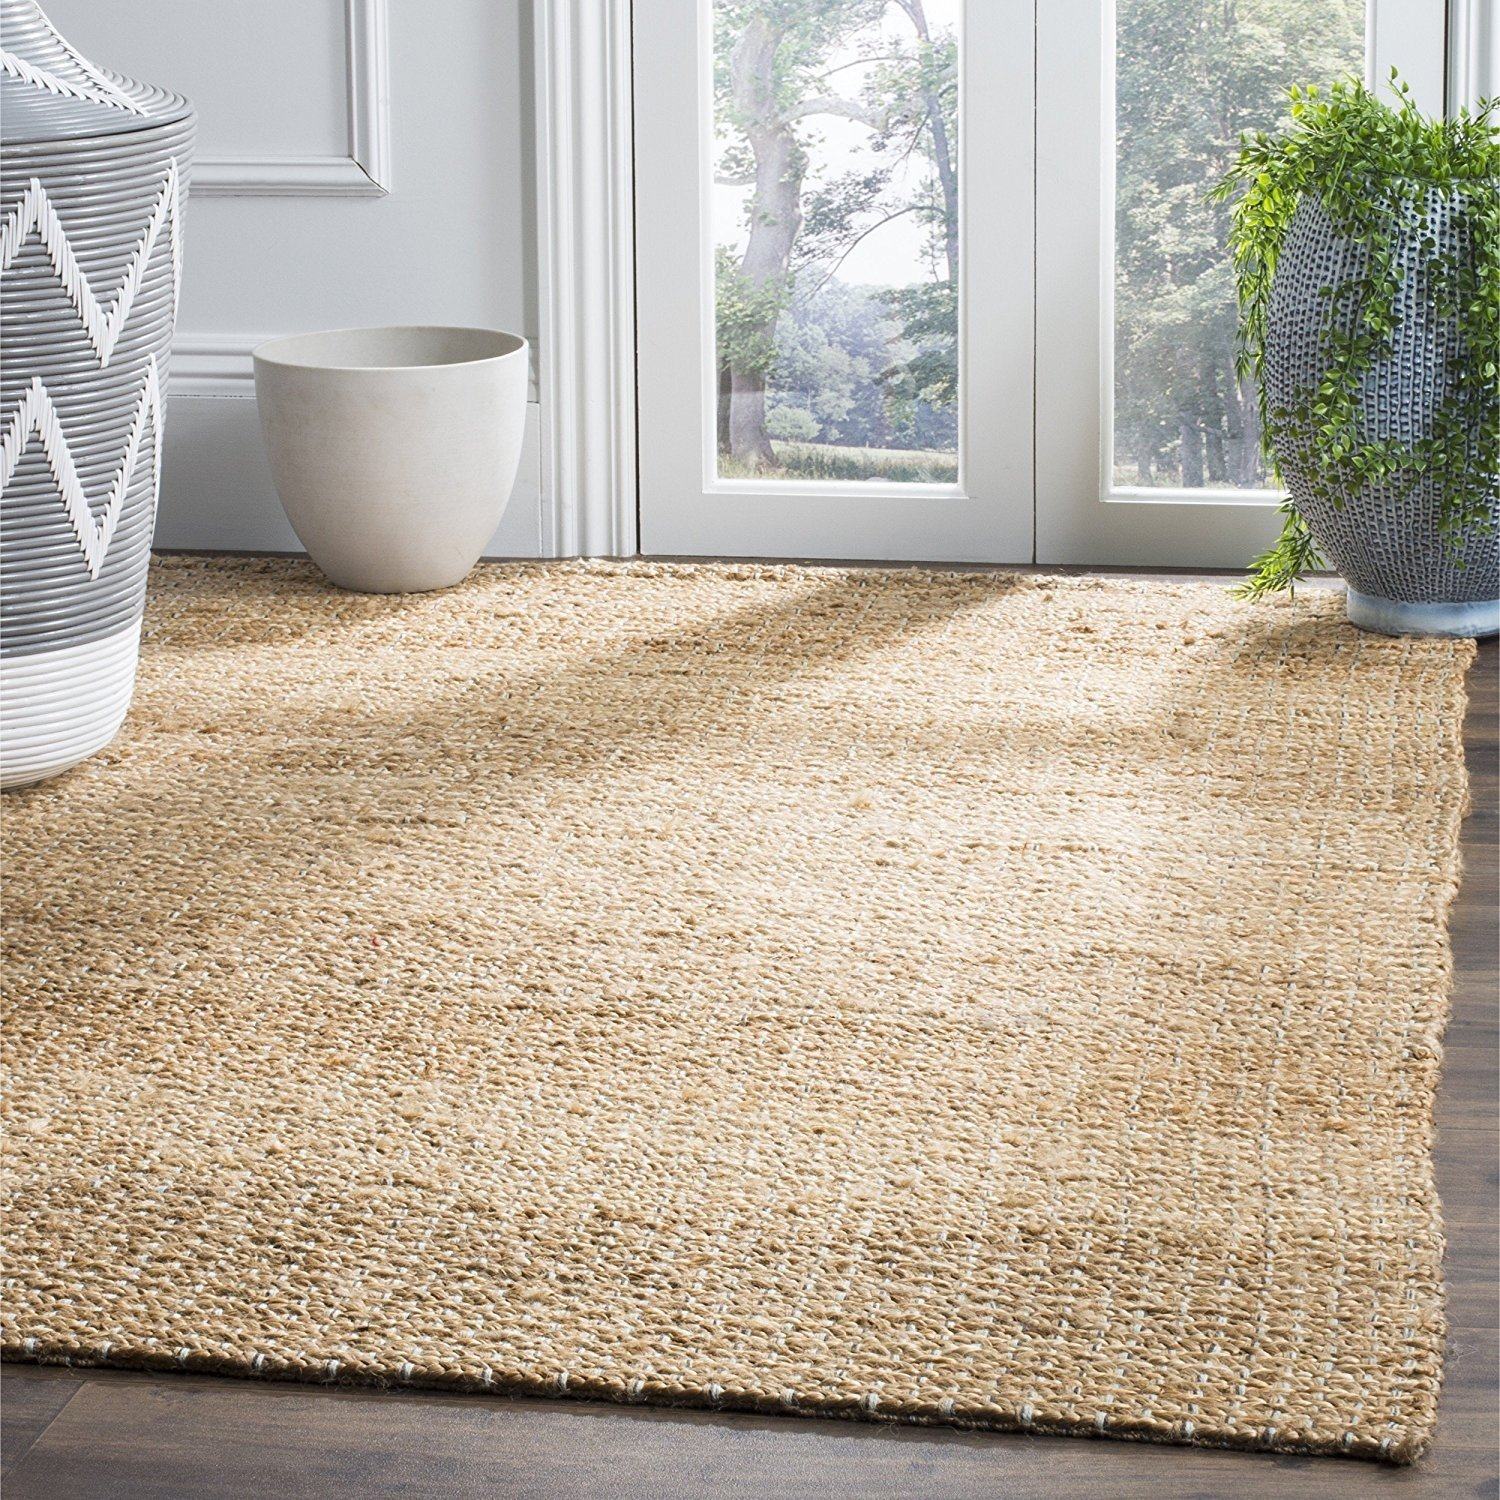 Safavieh Natural Fiber Collection NF452A Natural Sisal Area Rug (5' x 8')